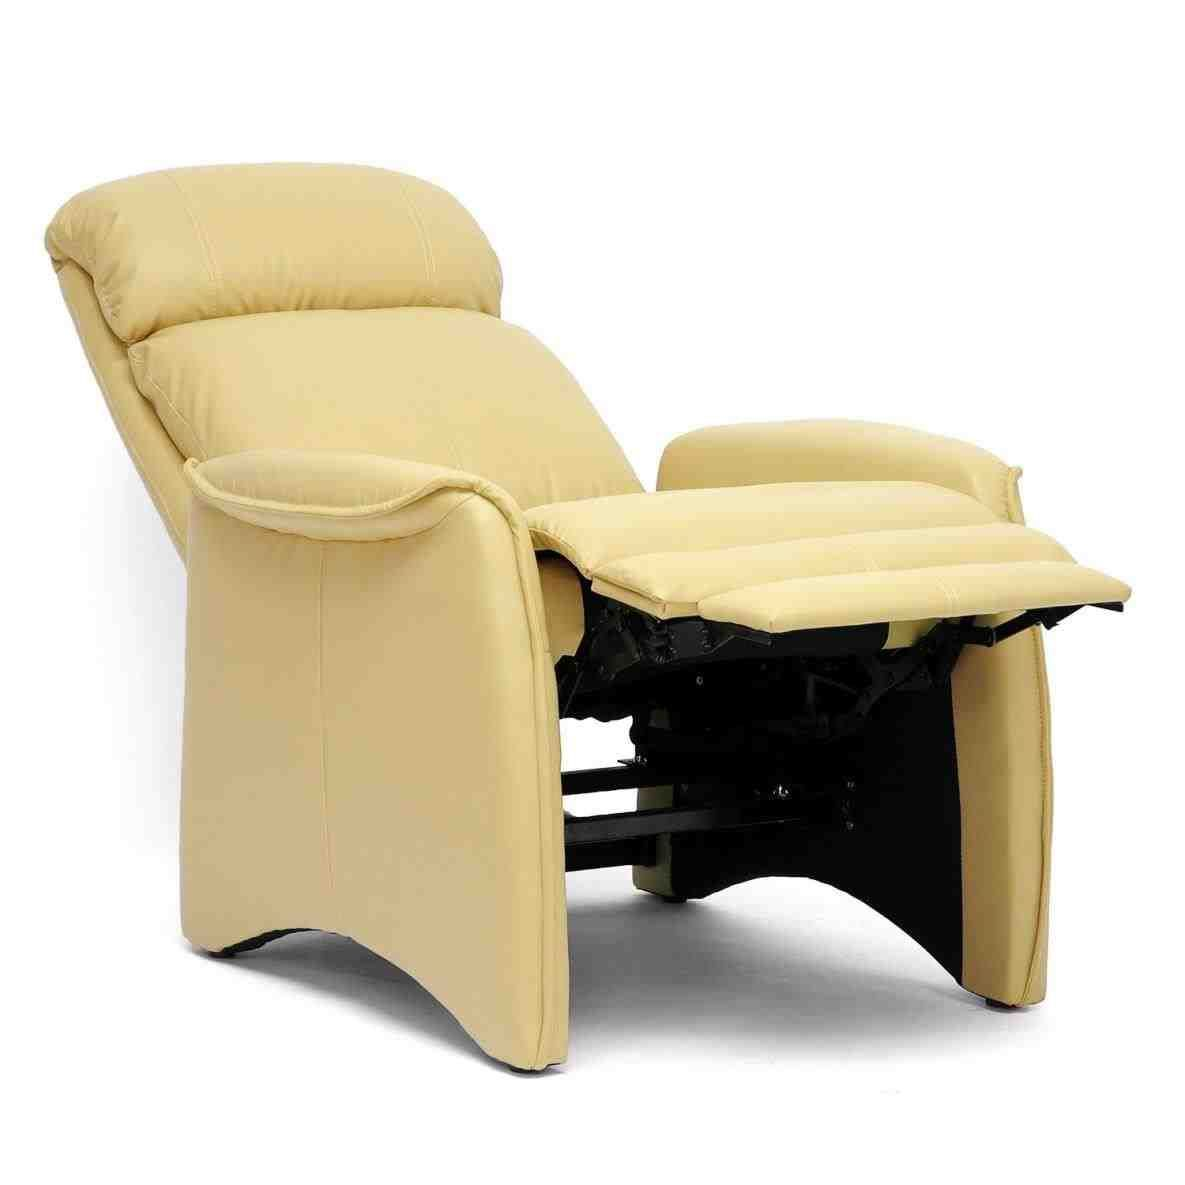 Cheap Recliner Chairs Uk Chicago Rise Recliner Lift Action Zero Clearance Recliner Cheap Chai Modern Recliner Contemporary Leather Couch Recliner Chair